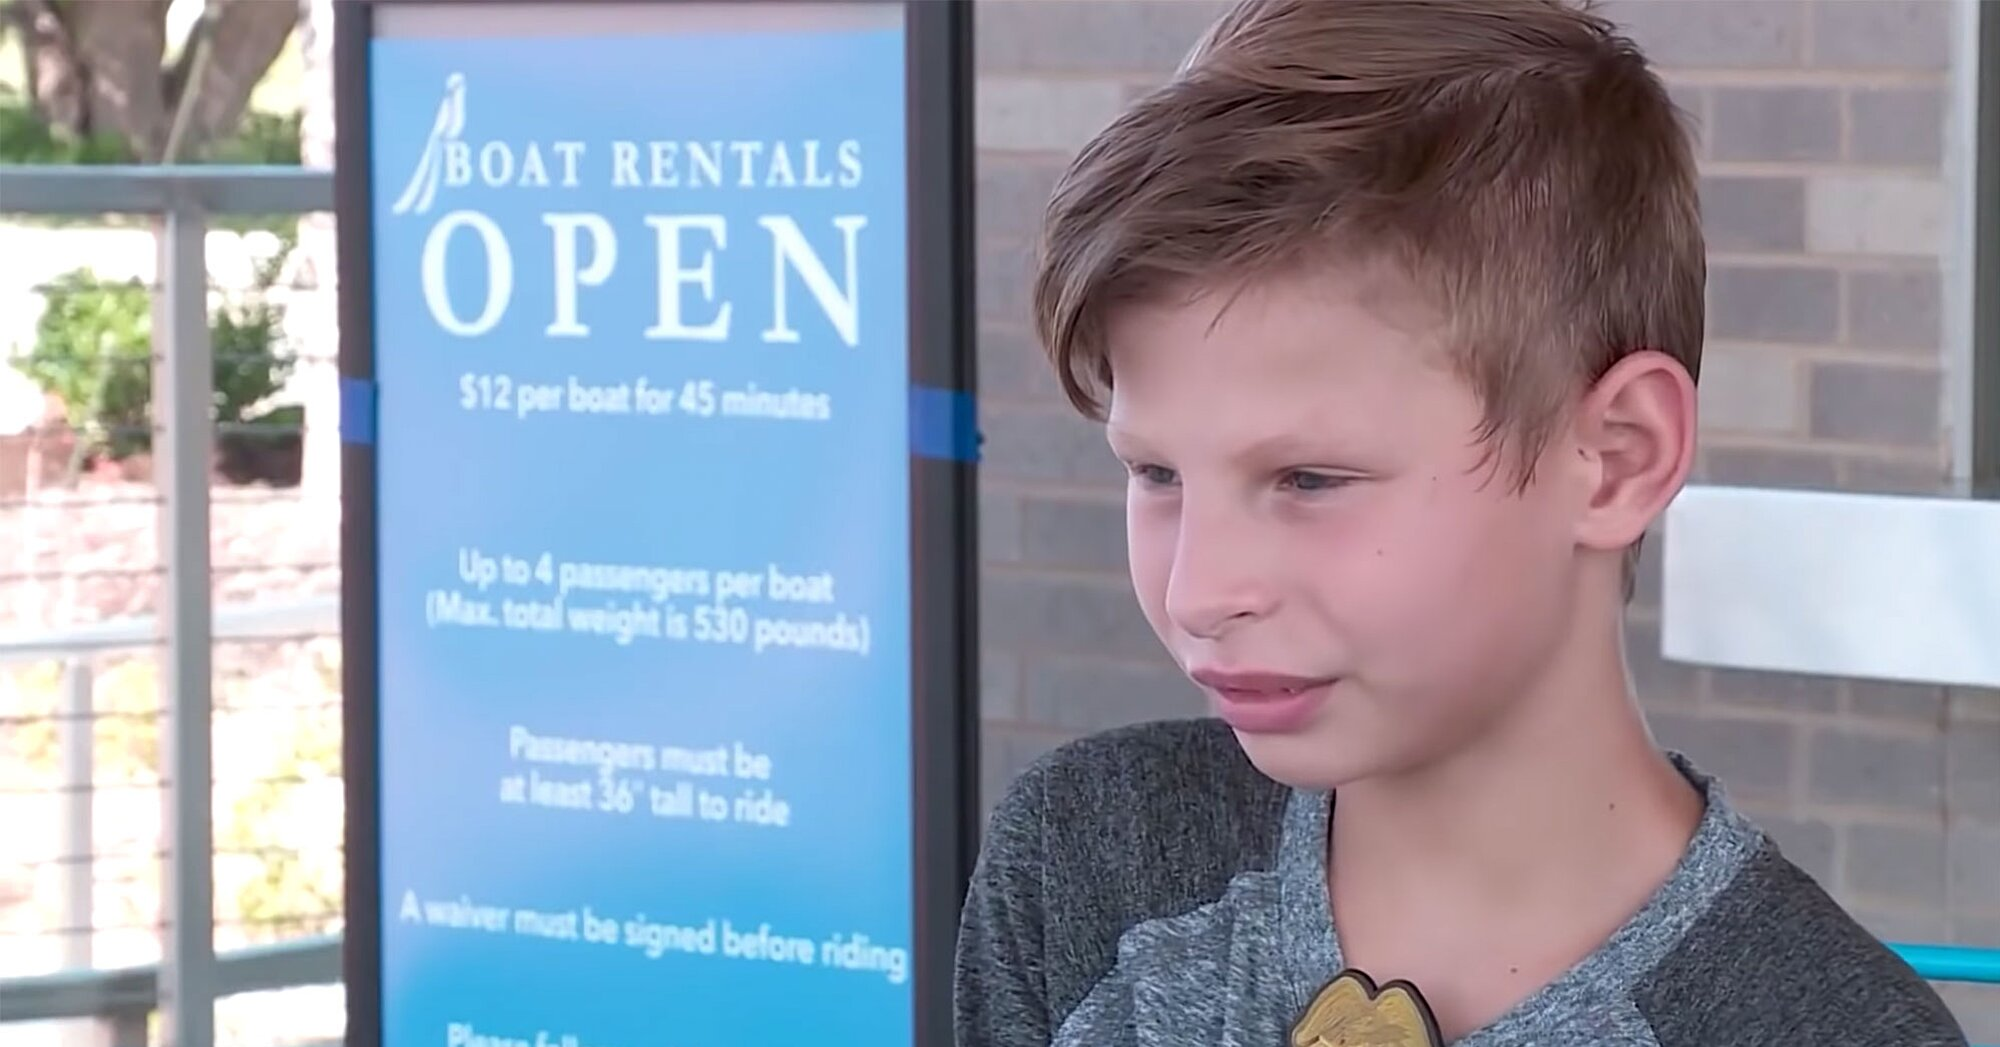 Oklahoma Boy, 9, in Foster Care Receives Over 5,000 Adoption Submissions After Pleading for a Family